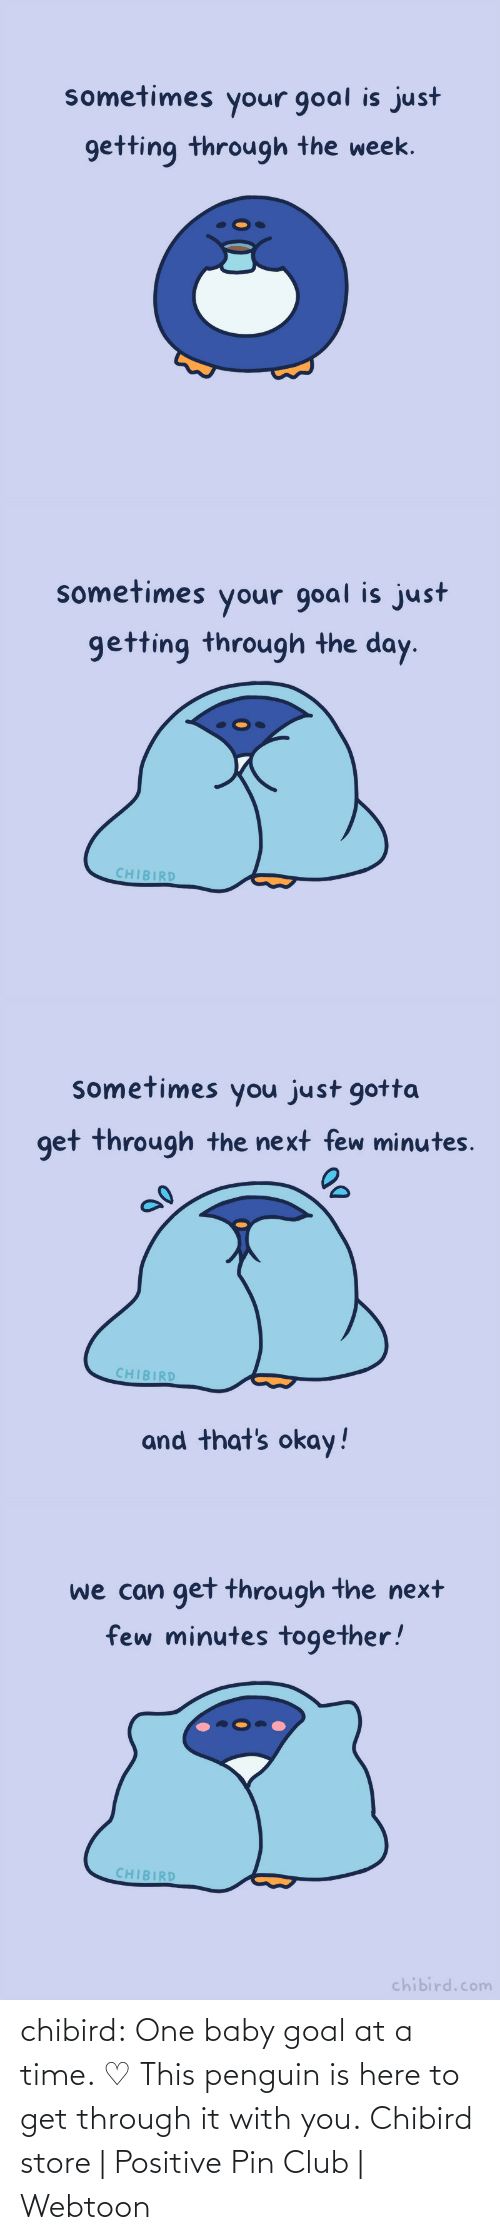 store: chibird:  One baby goal at a time. ♡ This penguin is here to get through it with you.  Chibird store | Positive Pin Club | Webtoon